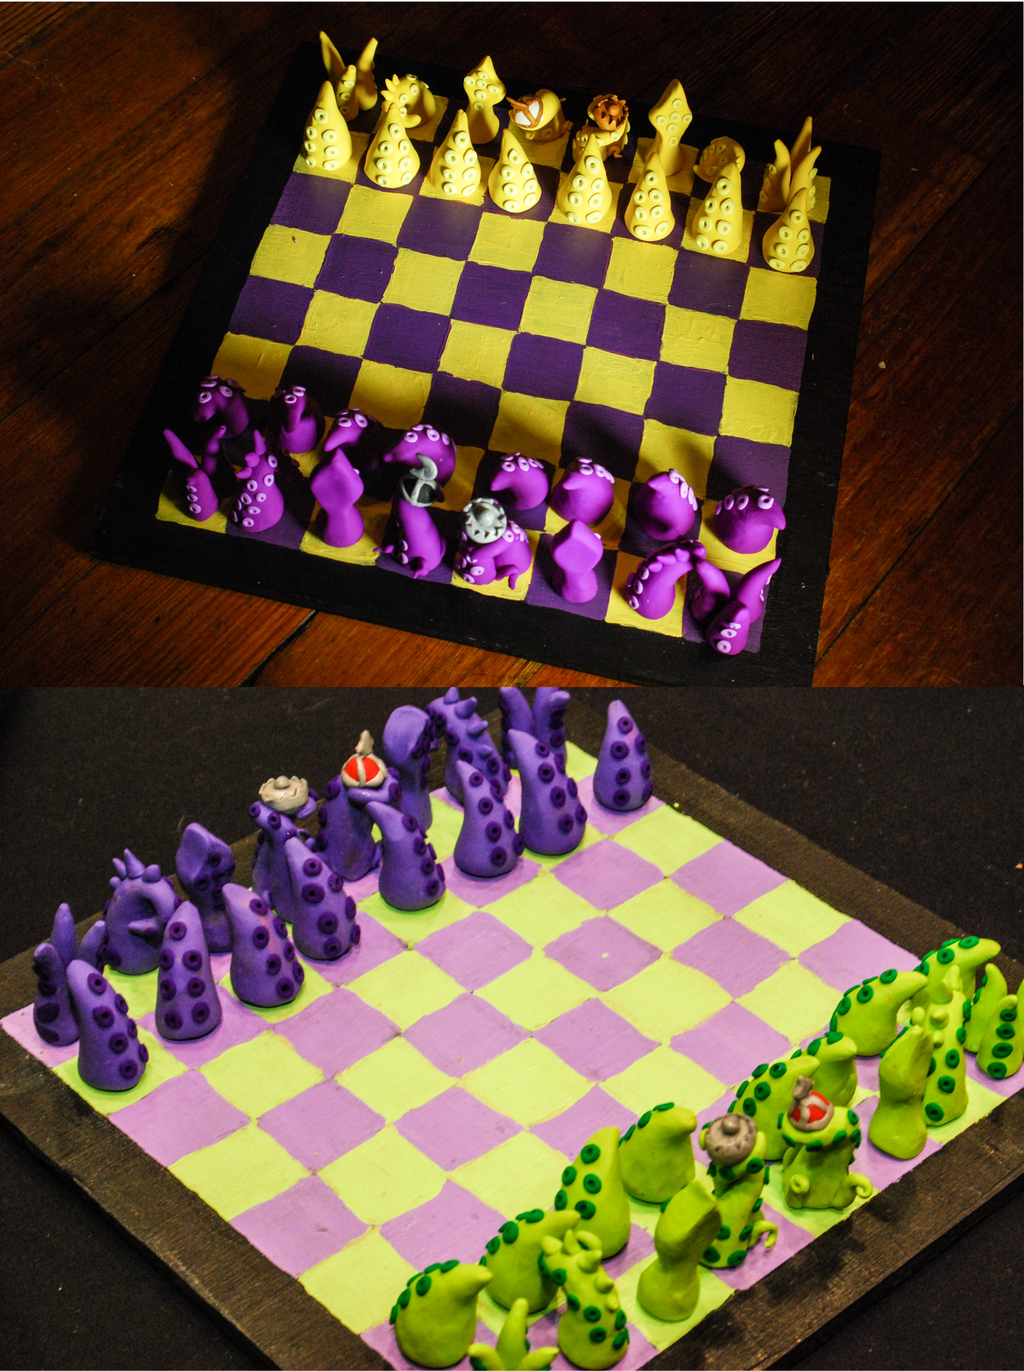 Tentacle Chess Board